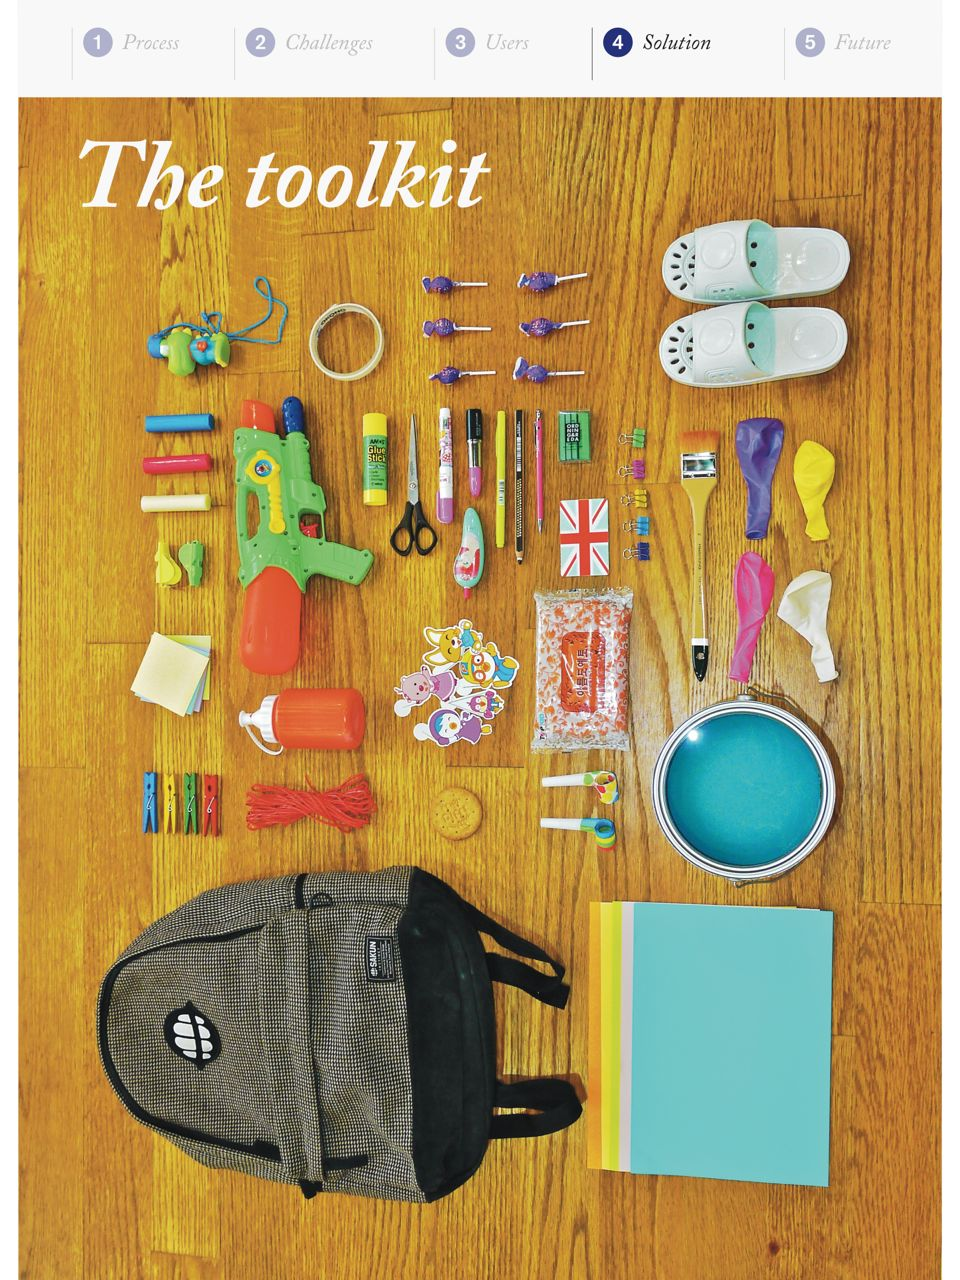 The toolkit contains different objects for the children to create their own activism material.